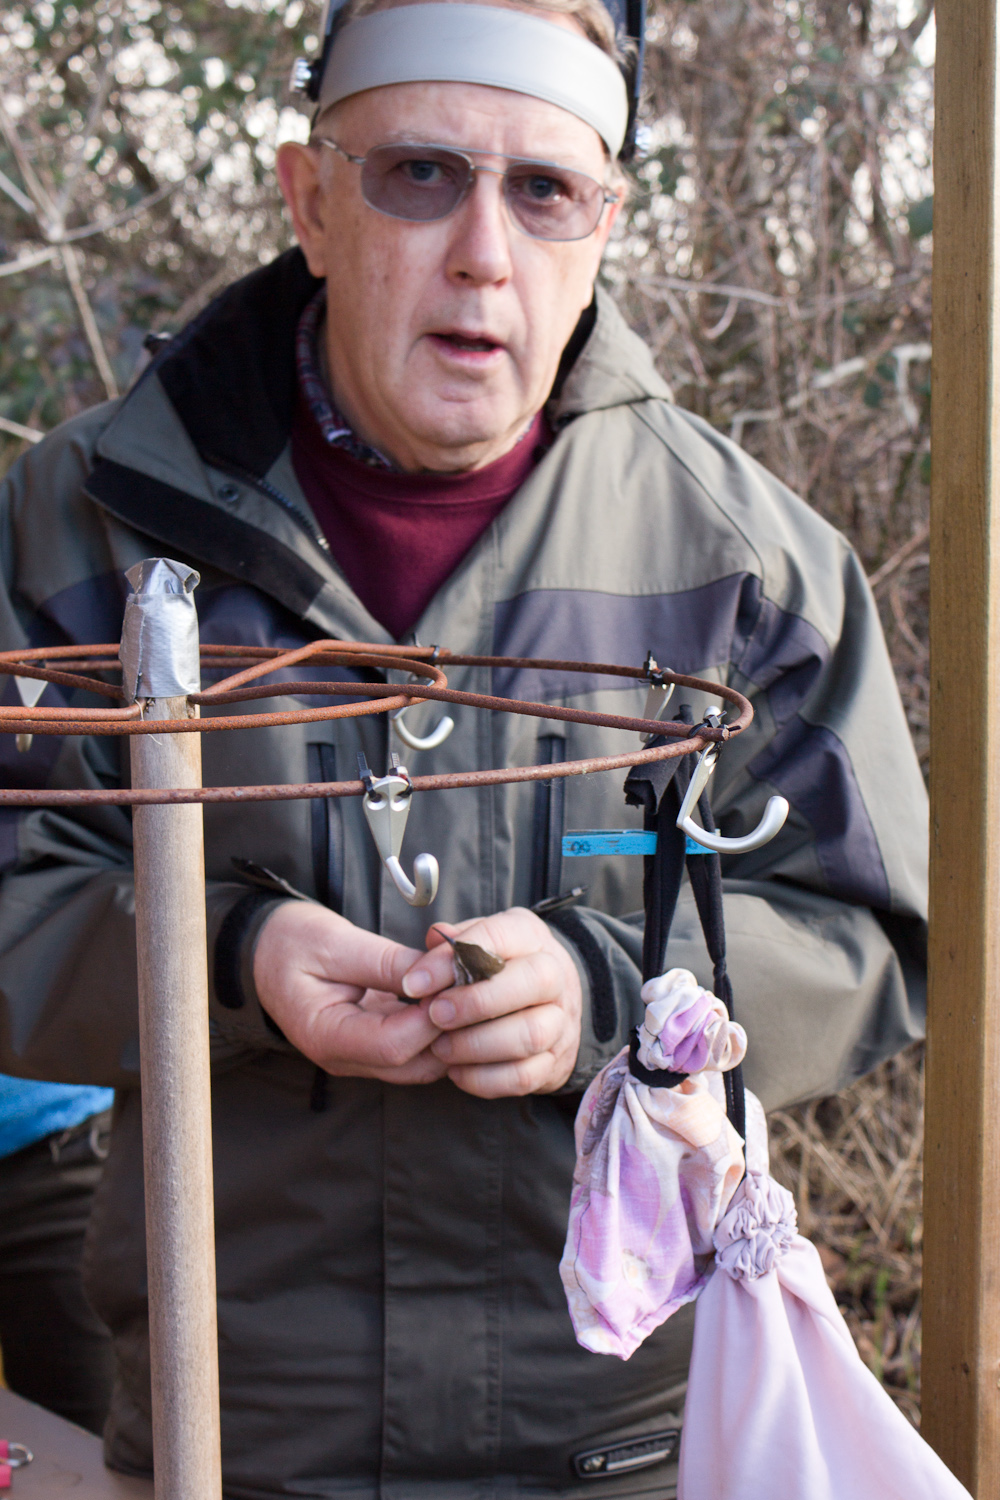 Winter birding is not as productive as spring and fall, but it is a low pressure way to train banding volunteers